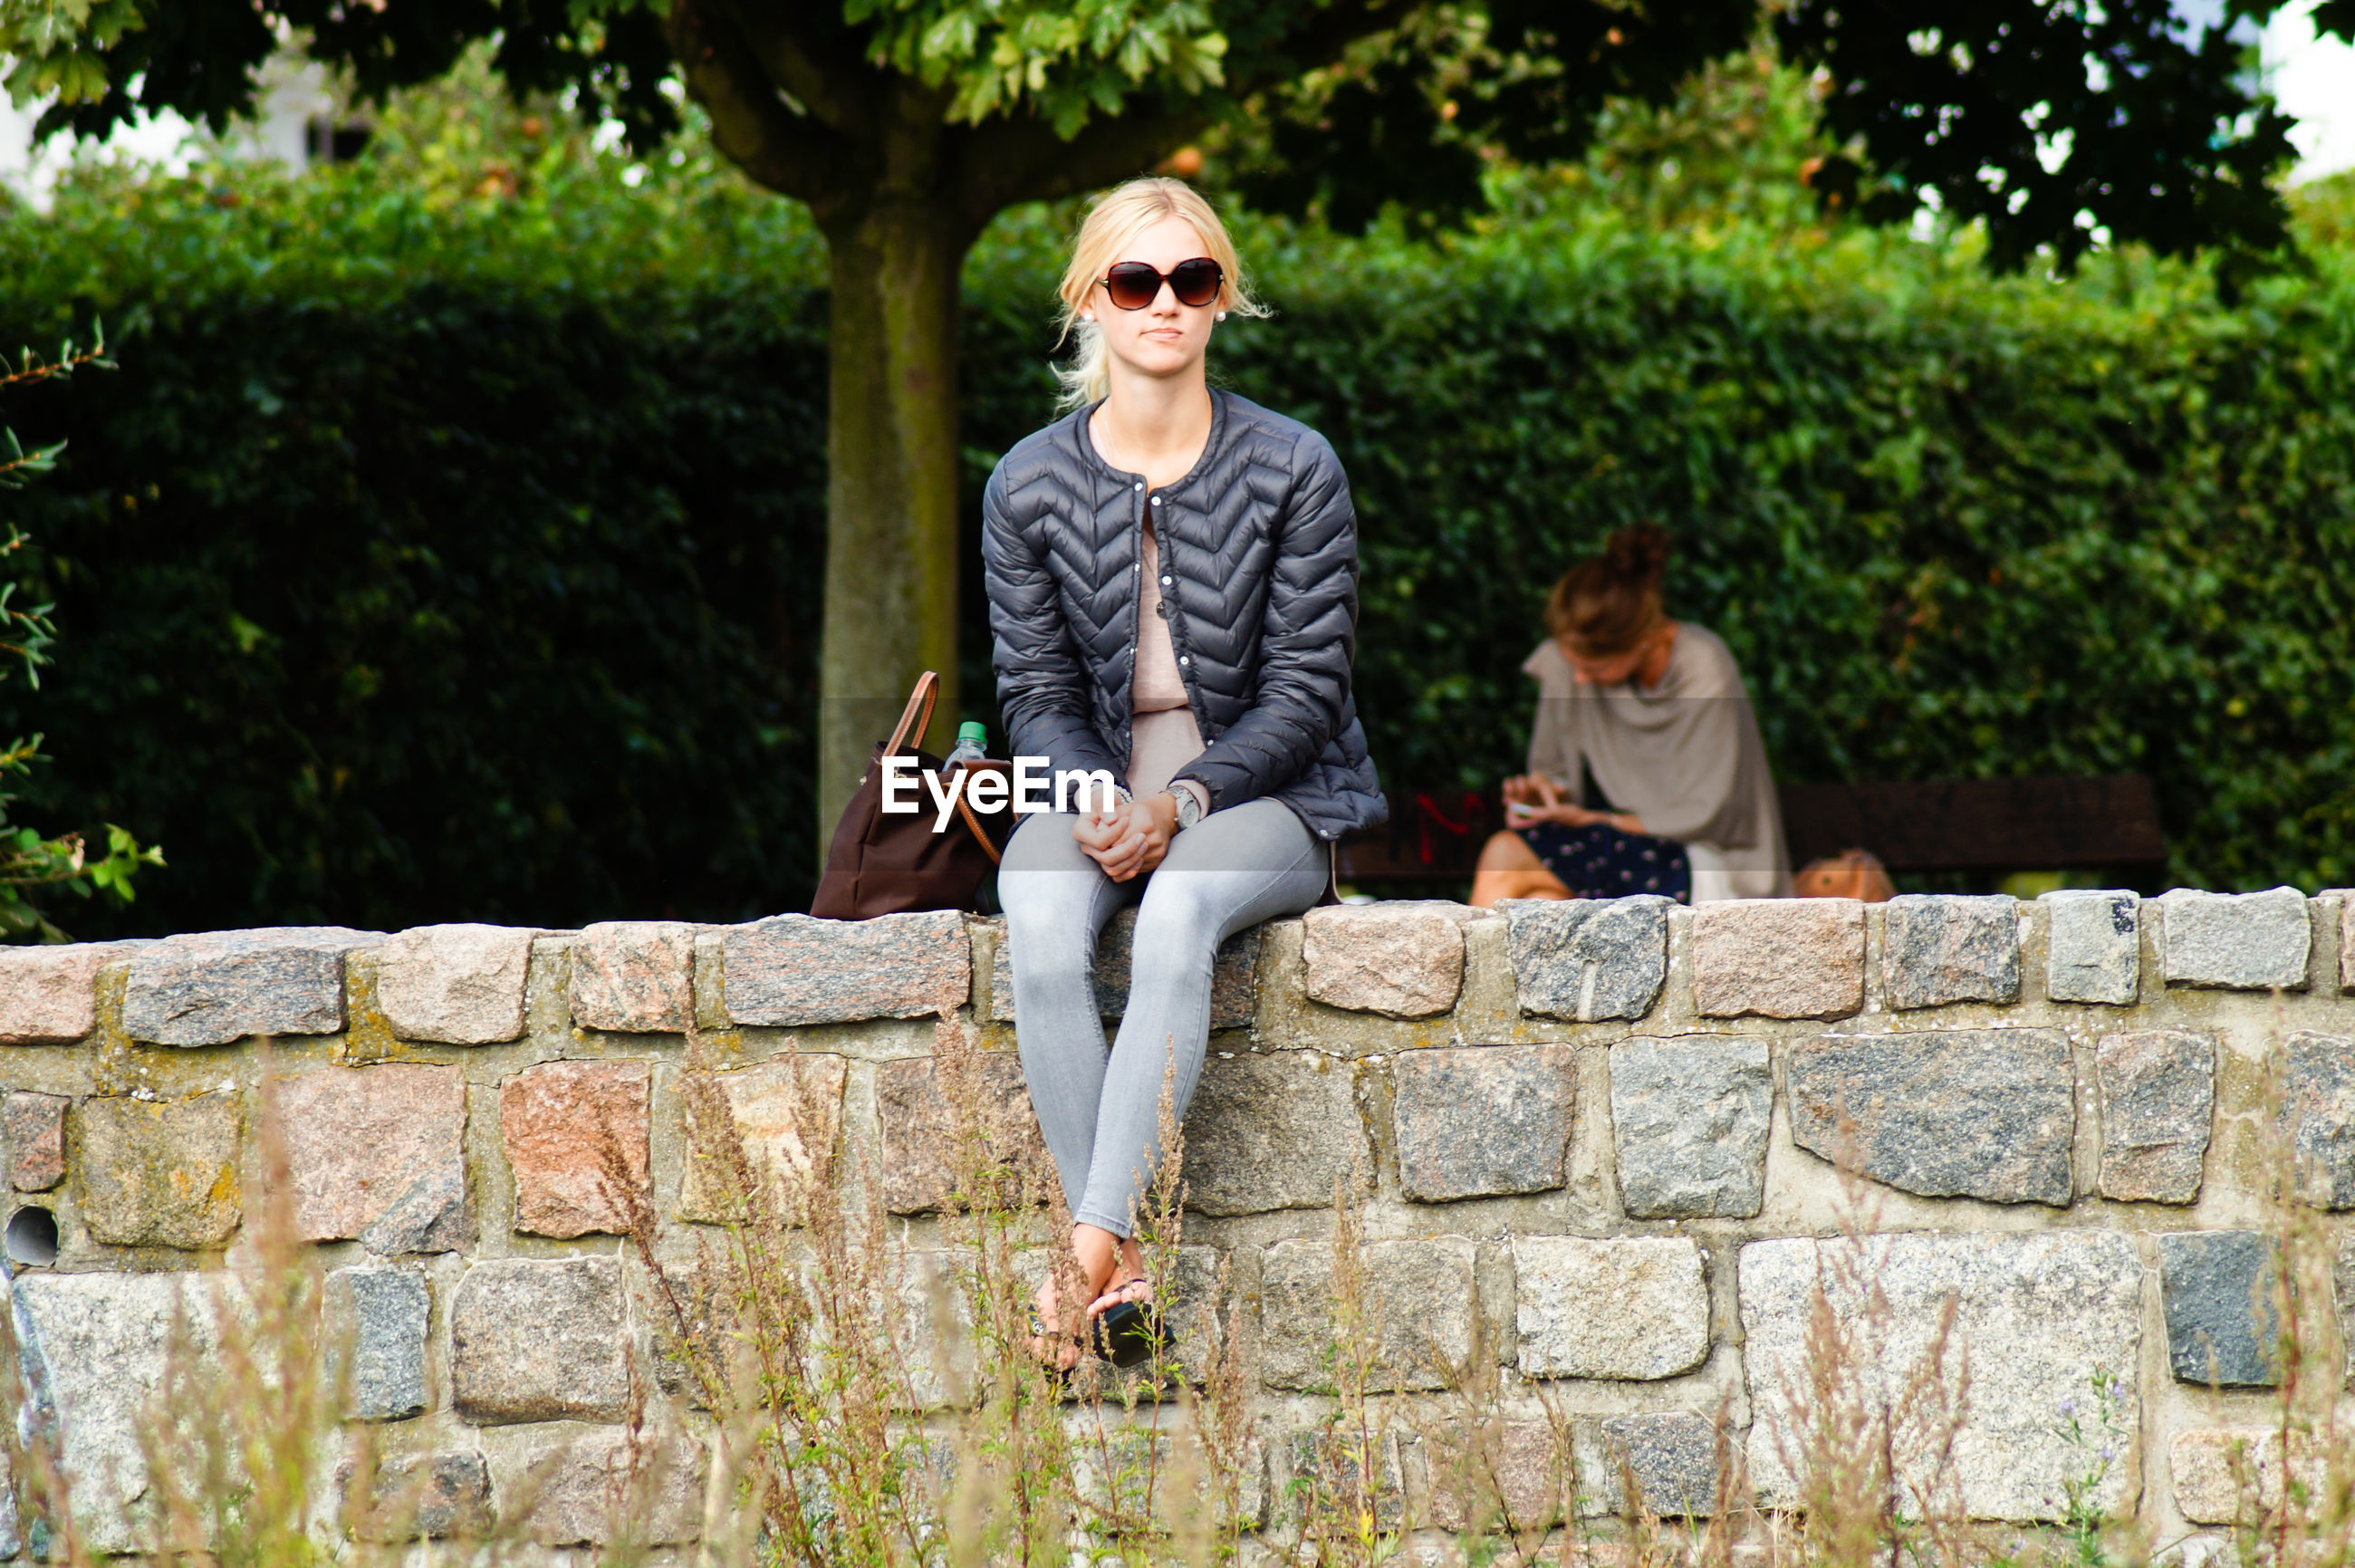 Full length of young woman sitting on retaining wall in park